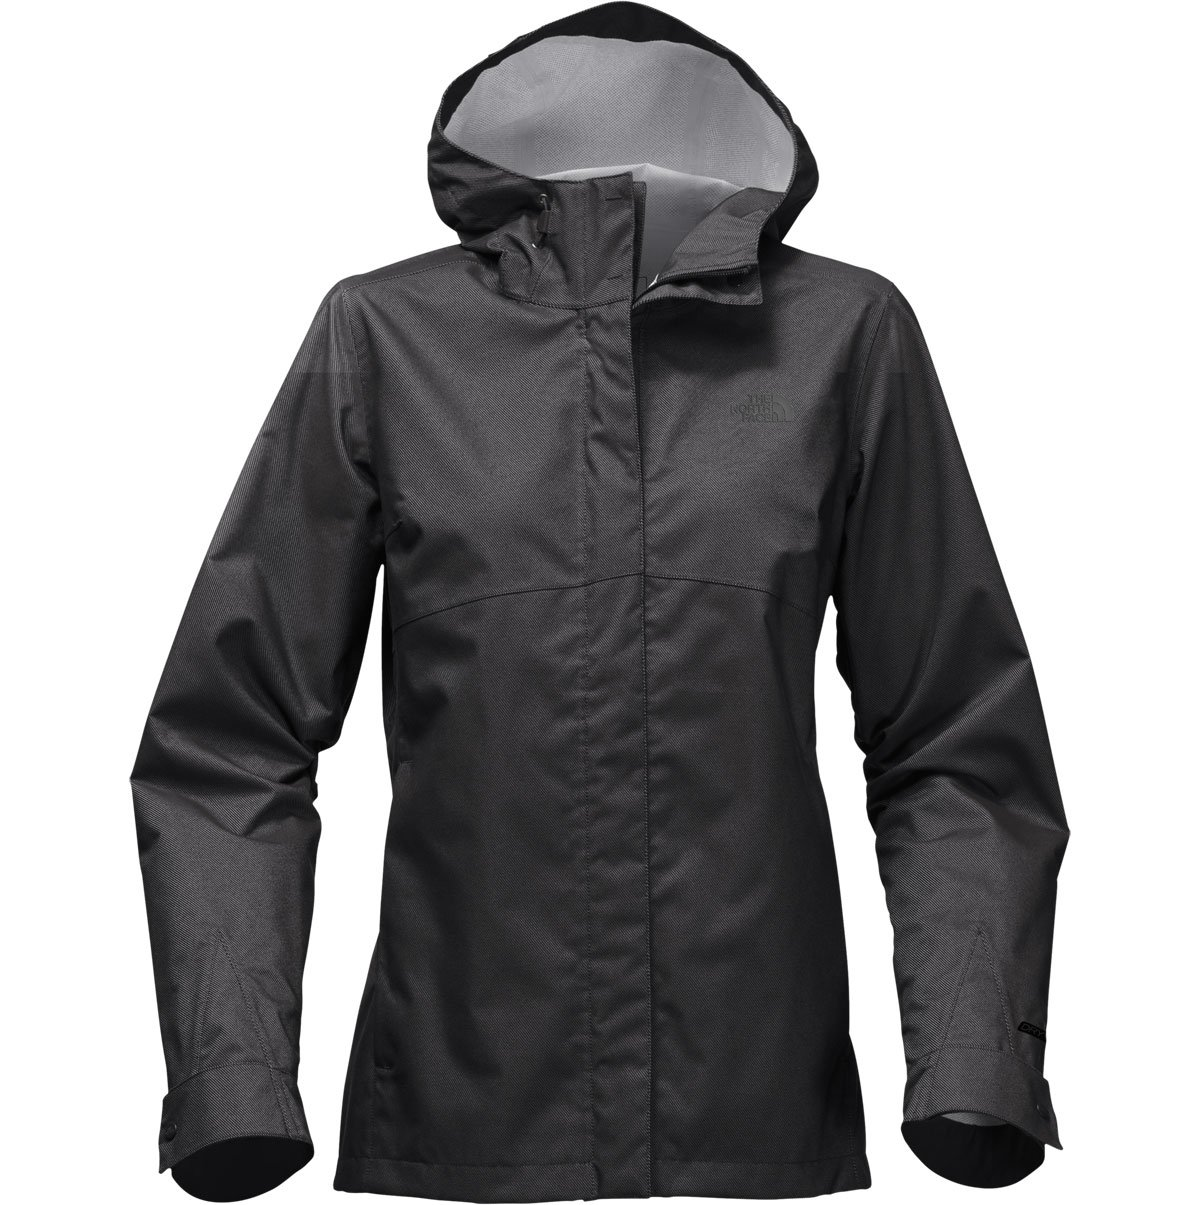 The North Face Berrien Jacket Womens Style: A2VCQ-J5C Size: L